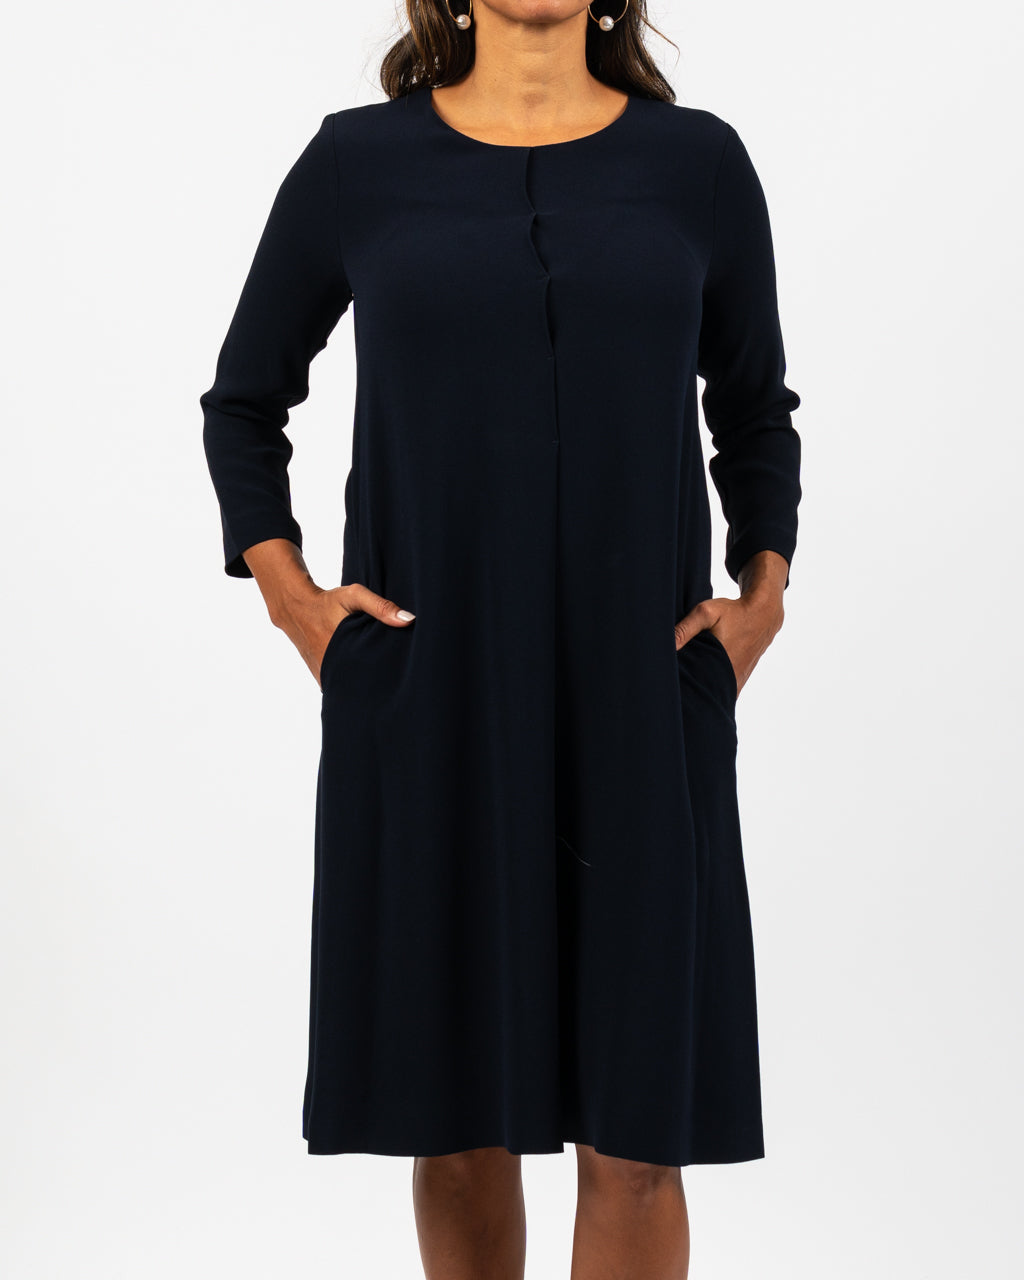 Navy Crepe Swing Dress